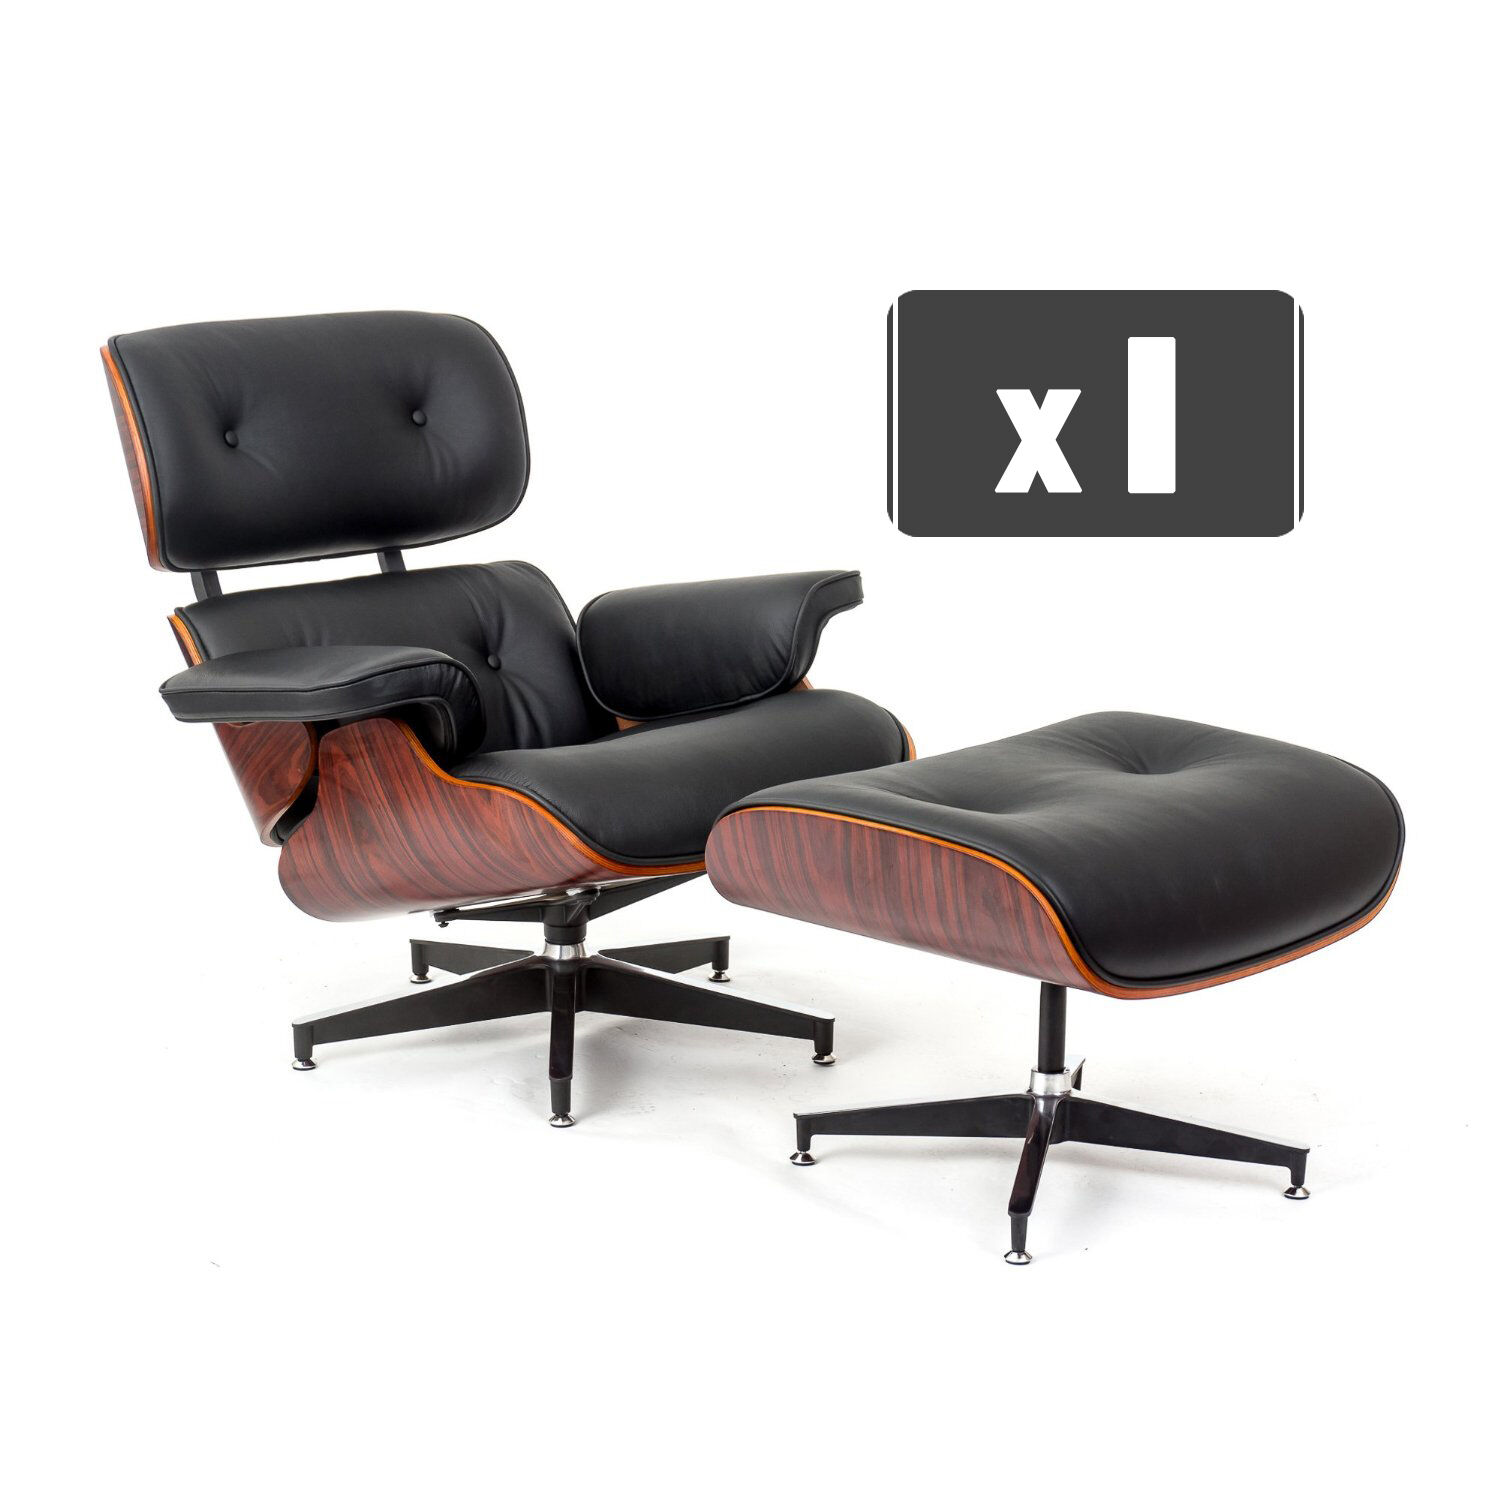 Replica charles eames lounge chair ottoman in black for Eames chair replica schweiz